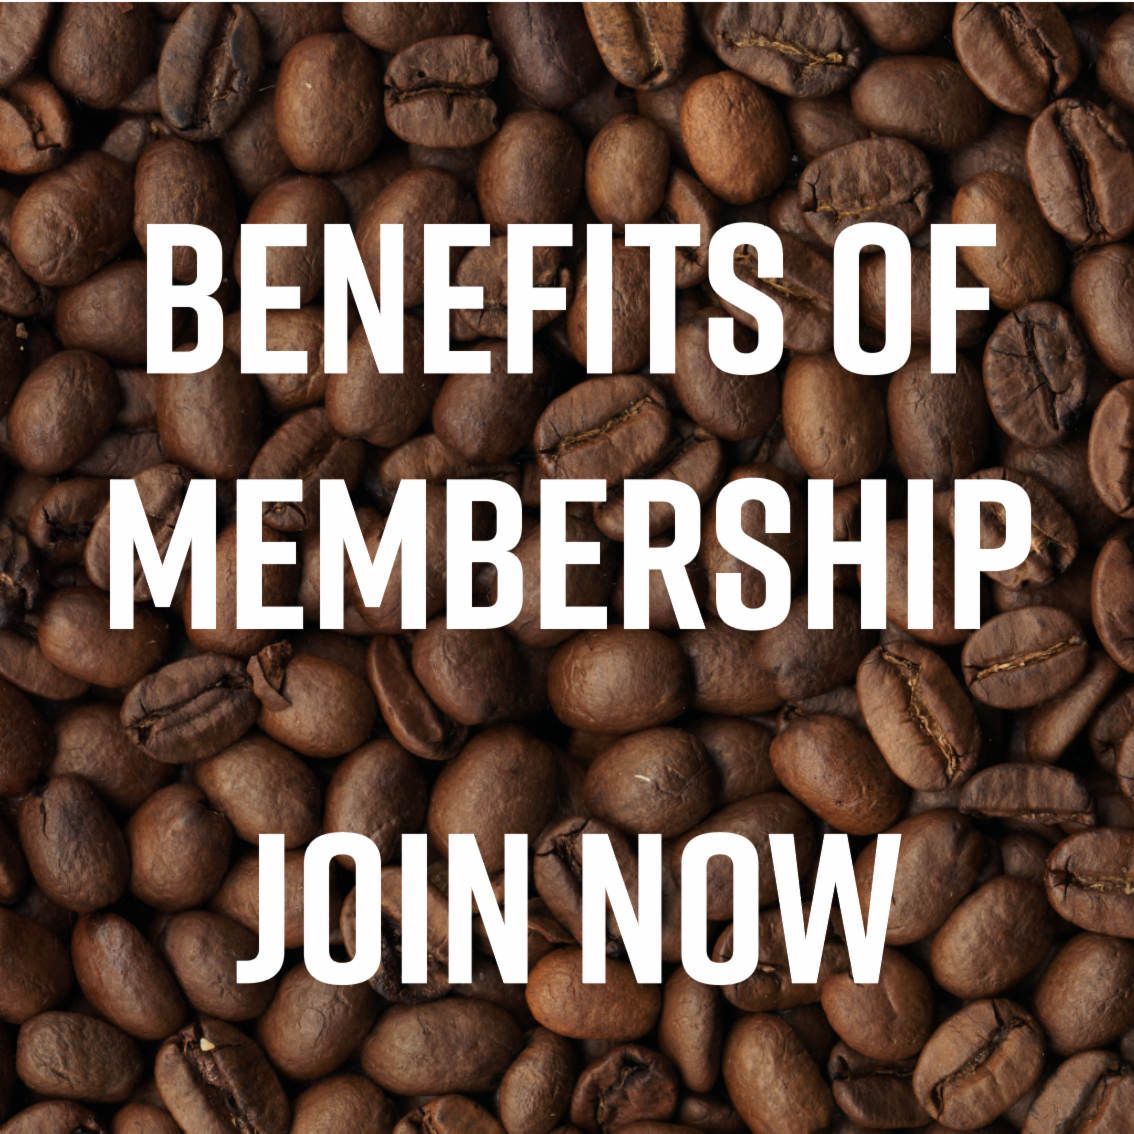 Benefits of Membership - Join Now